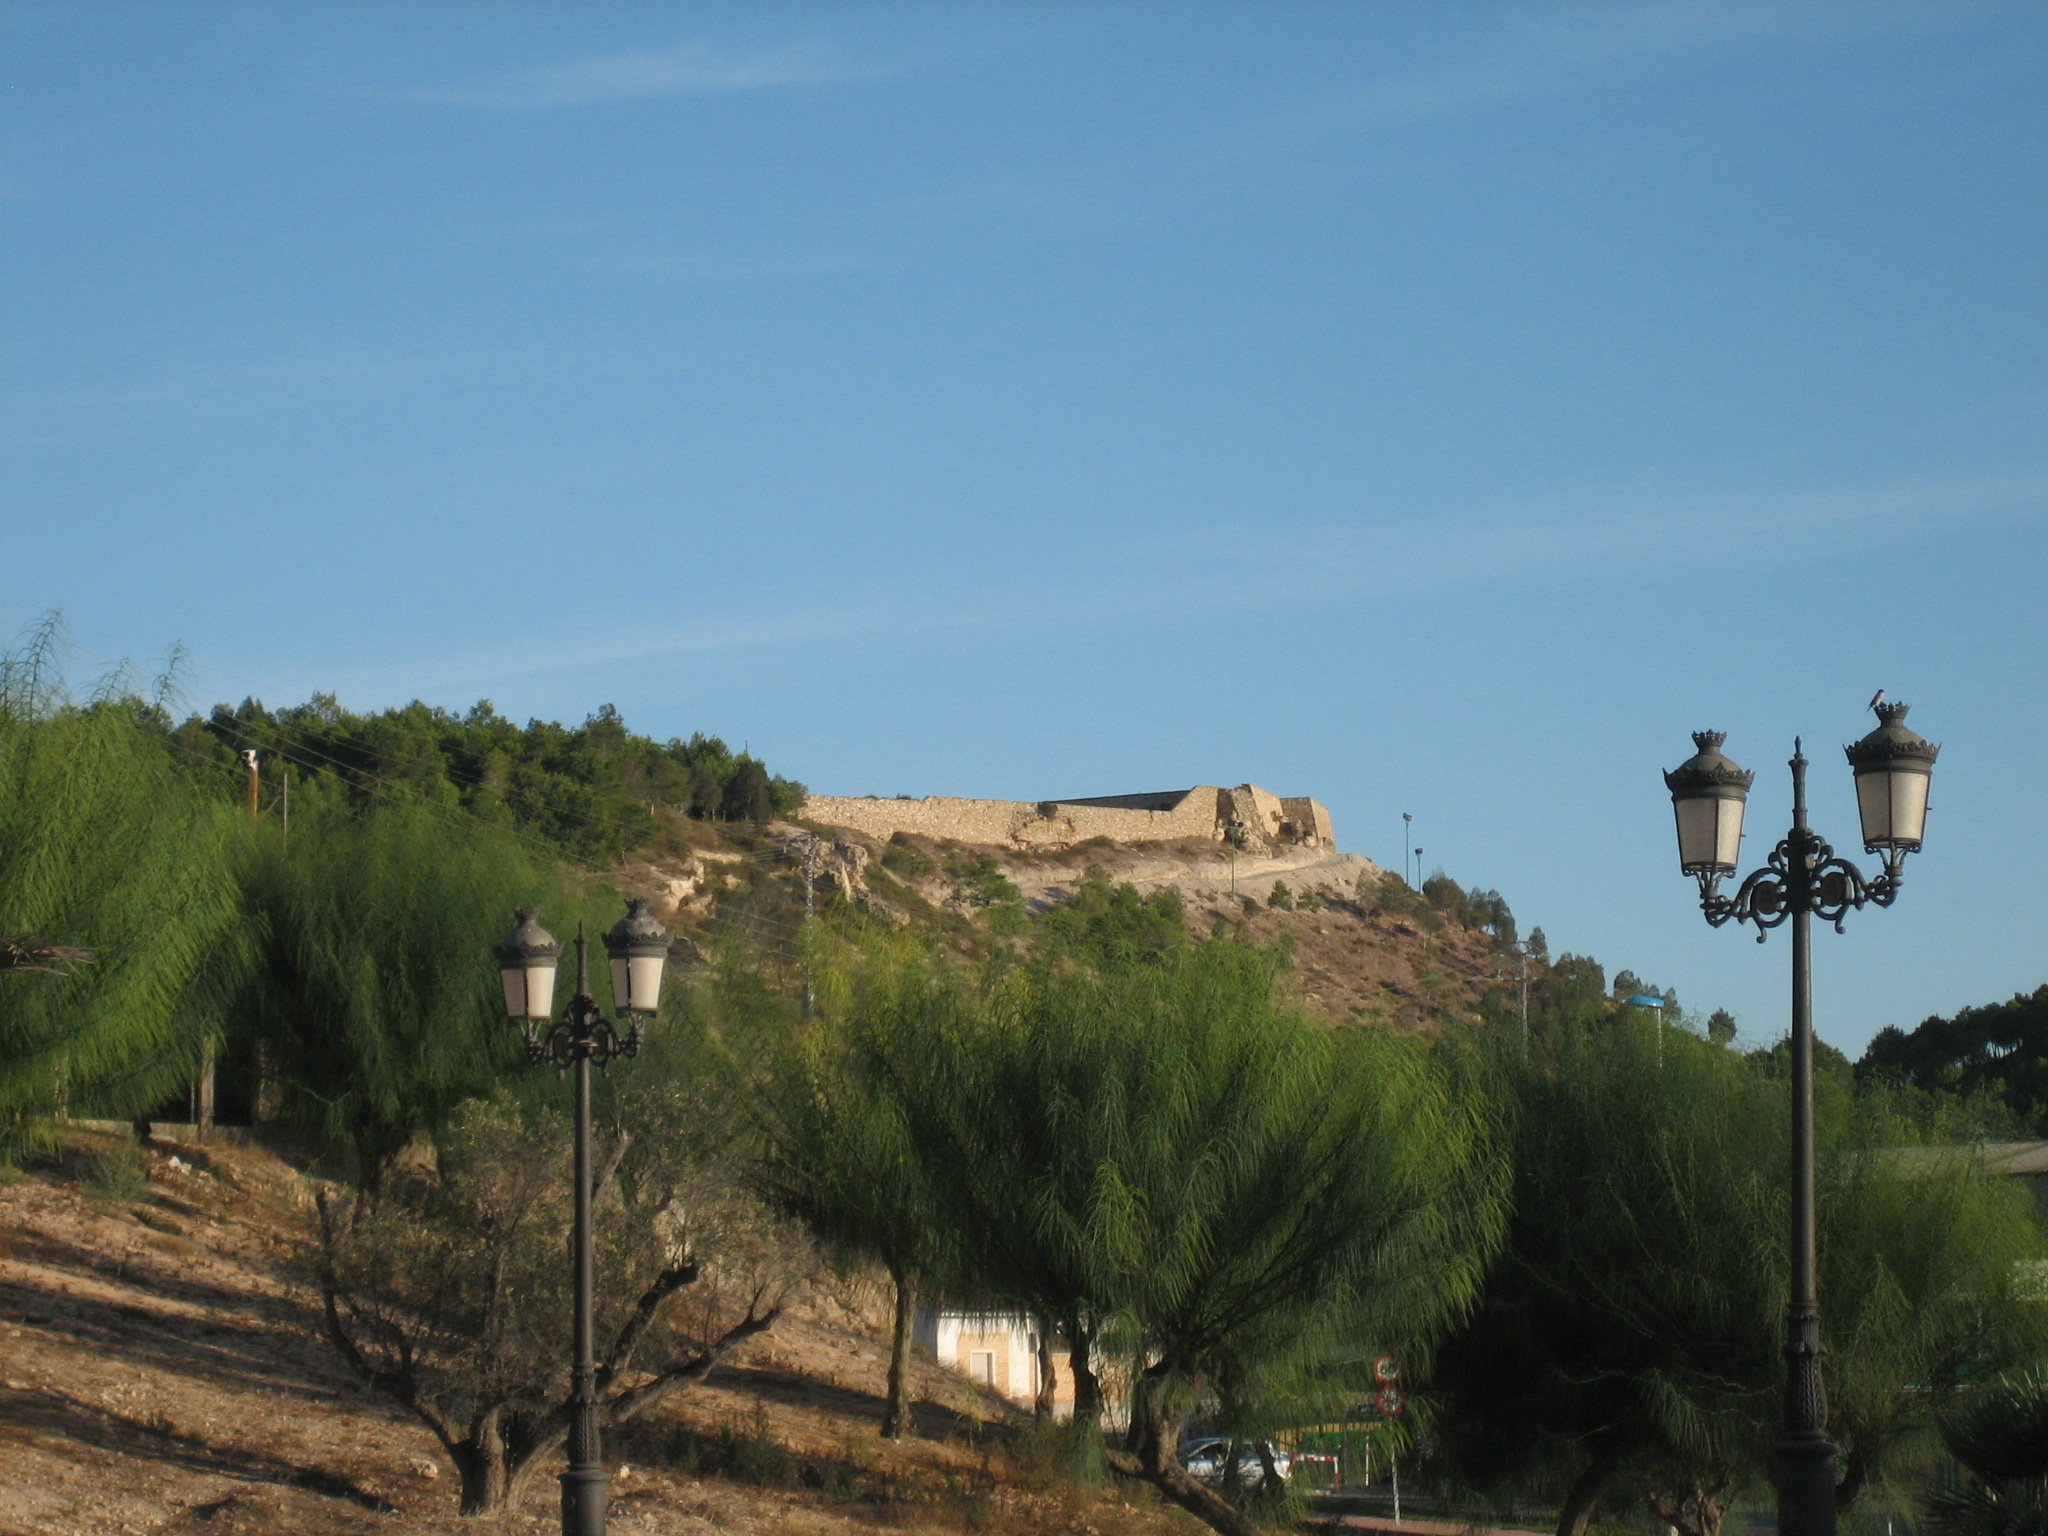 File:Castillo de Guardamar del Segura.jpg - Wikimedia Commons